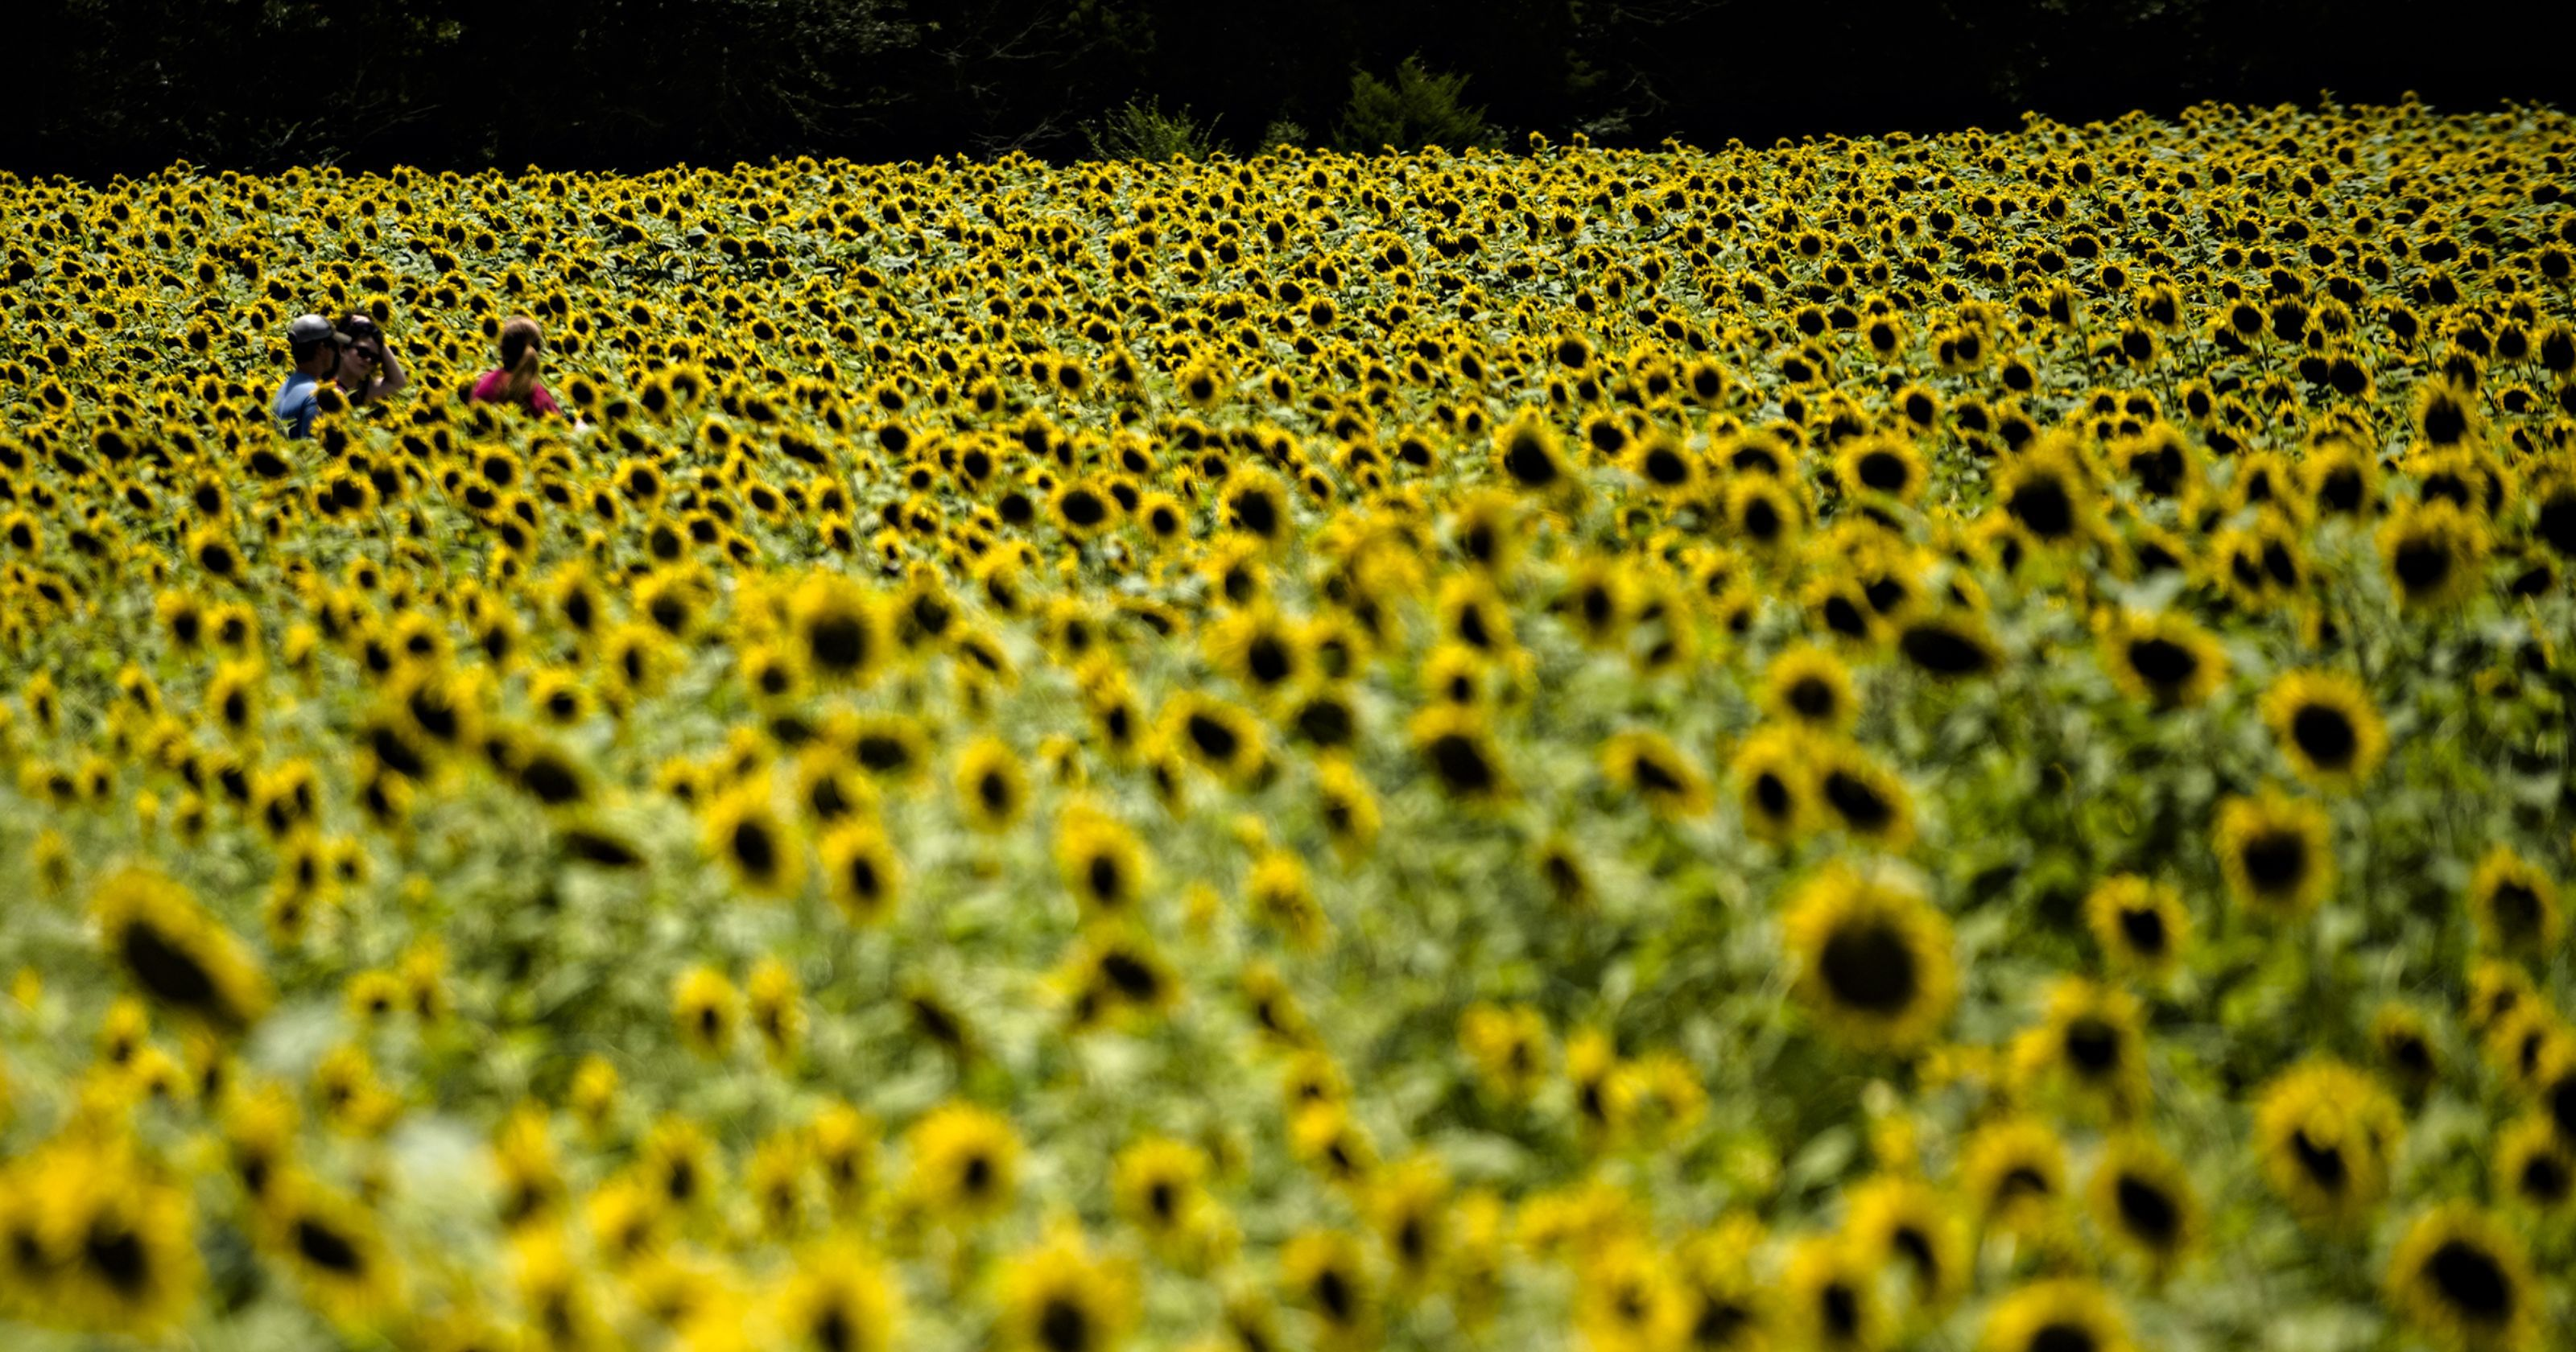 The Sunflower Field in Autauga County